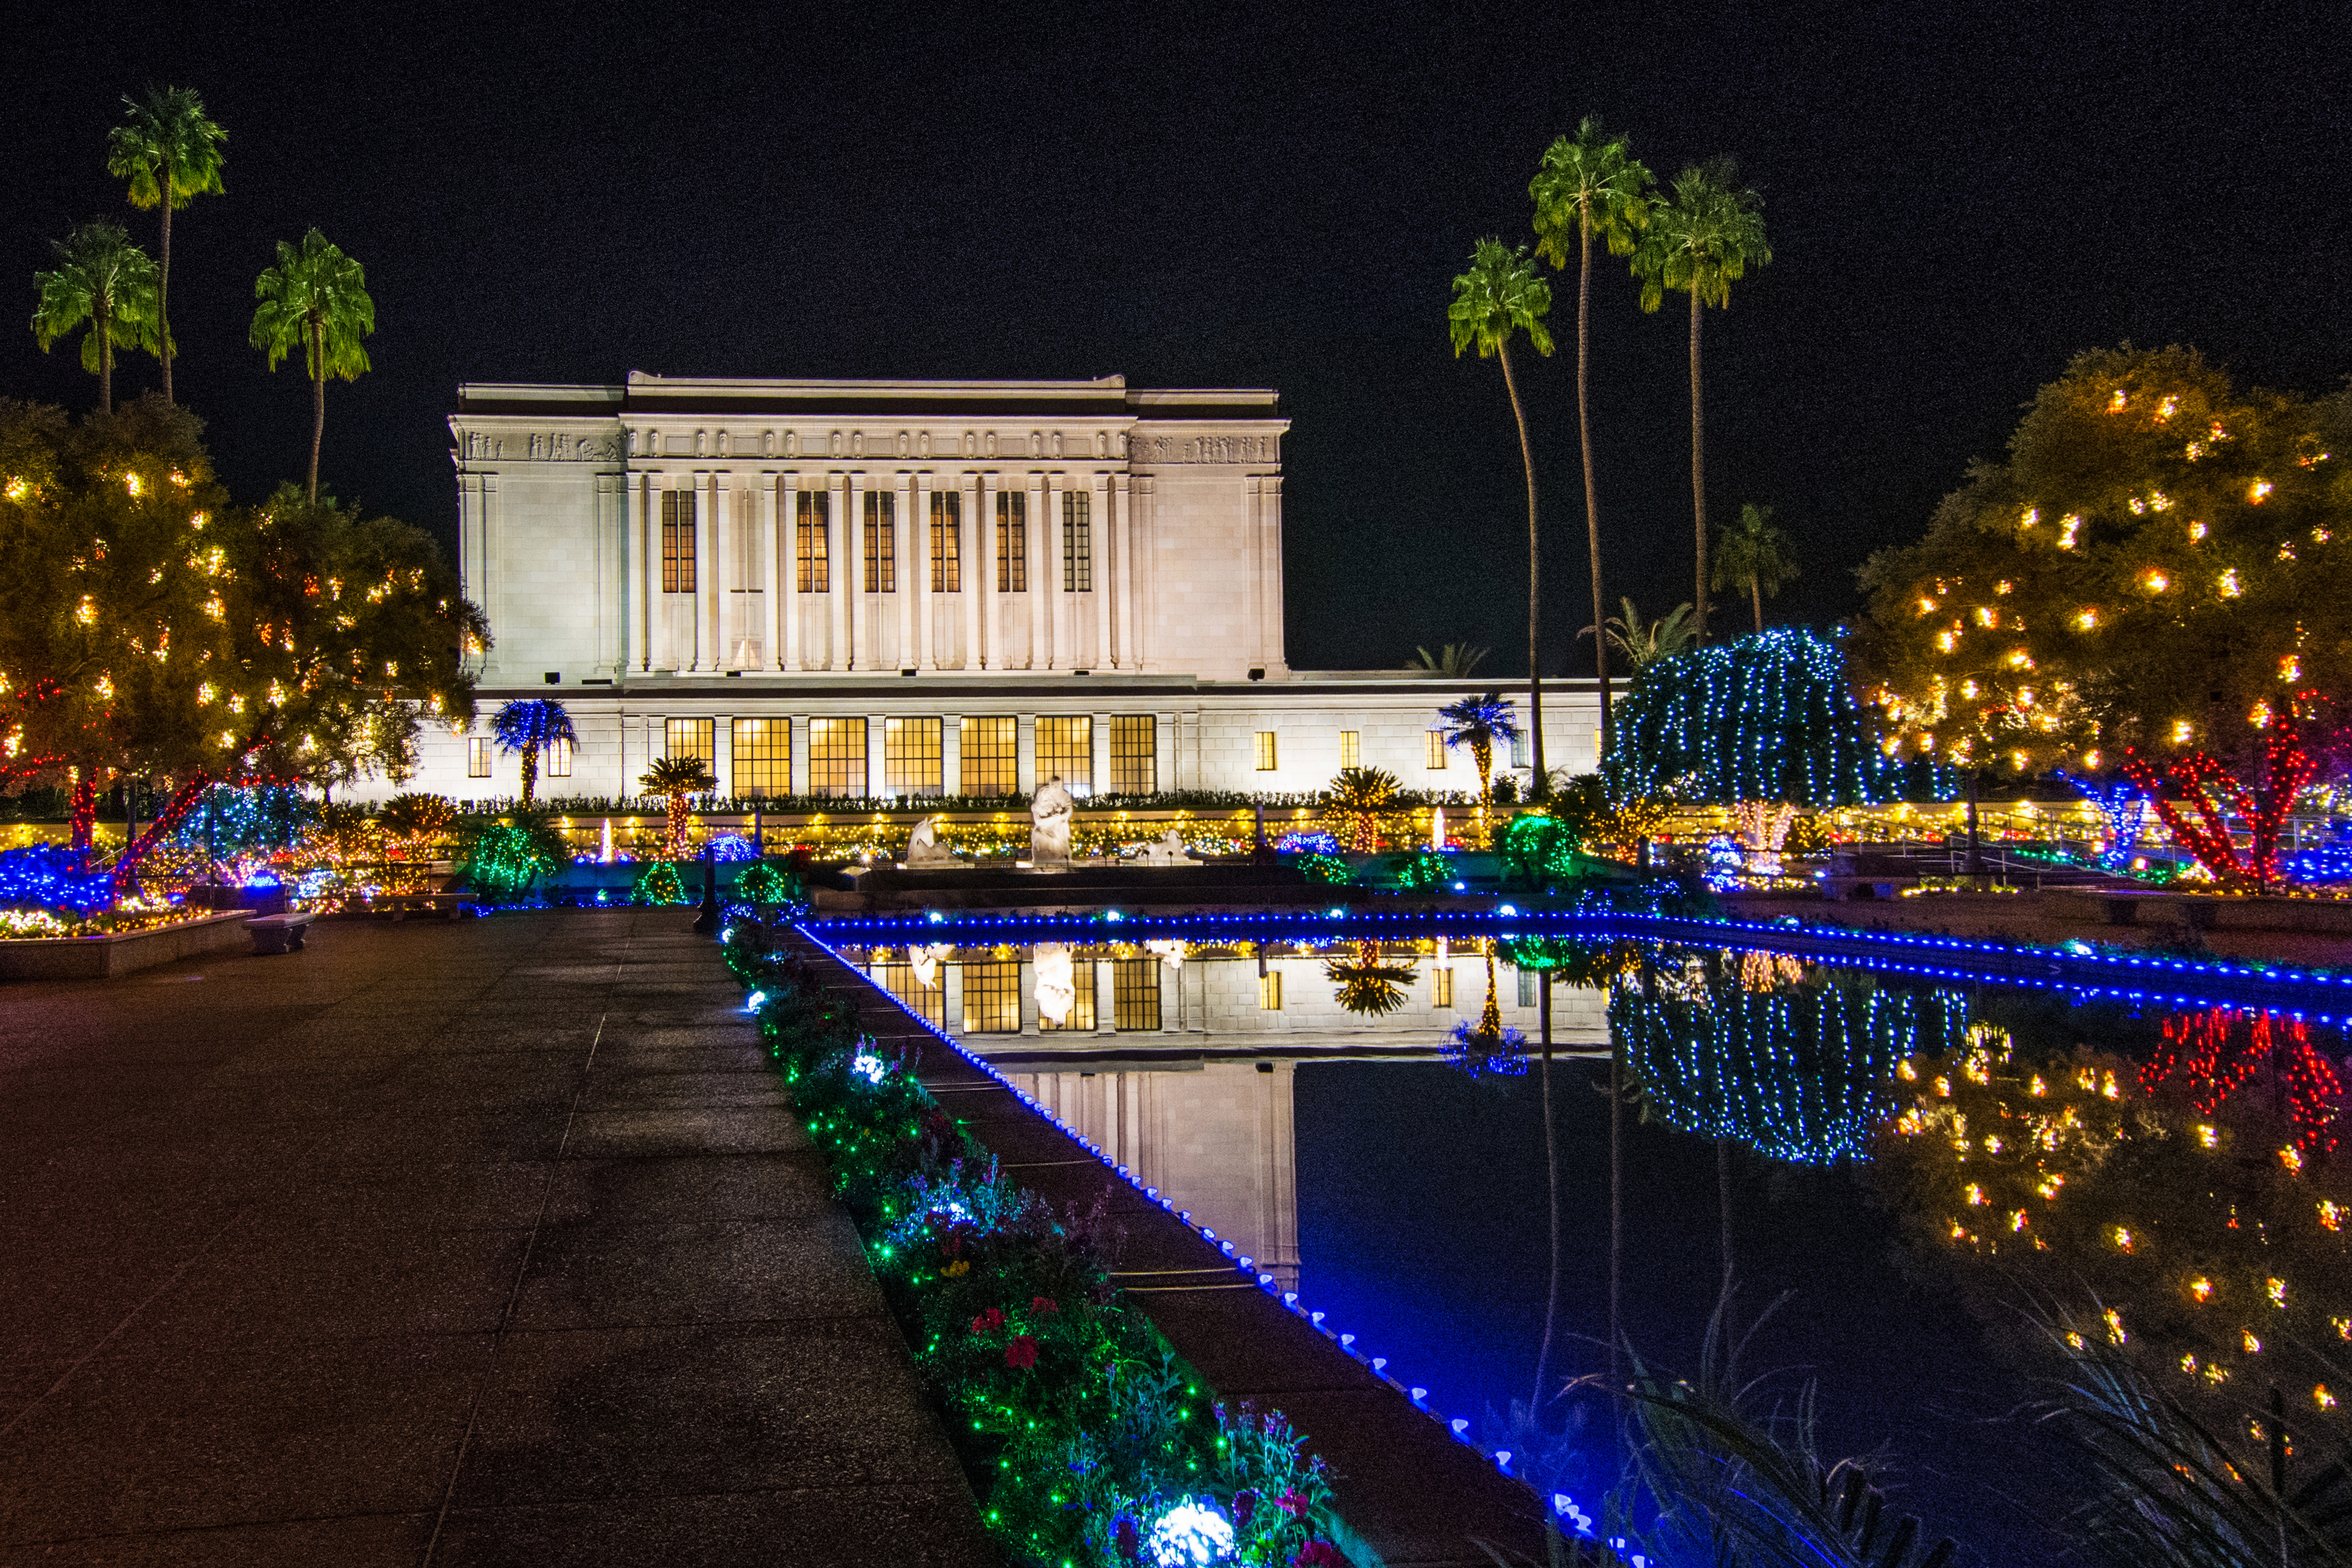 The Mesa Arizona Temple Gardens Christmas Lights event, which was started as a gift to the community, welcomes thousands to grounds of the temple each year to celebrate the birth of the Savior. Photo by John Power